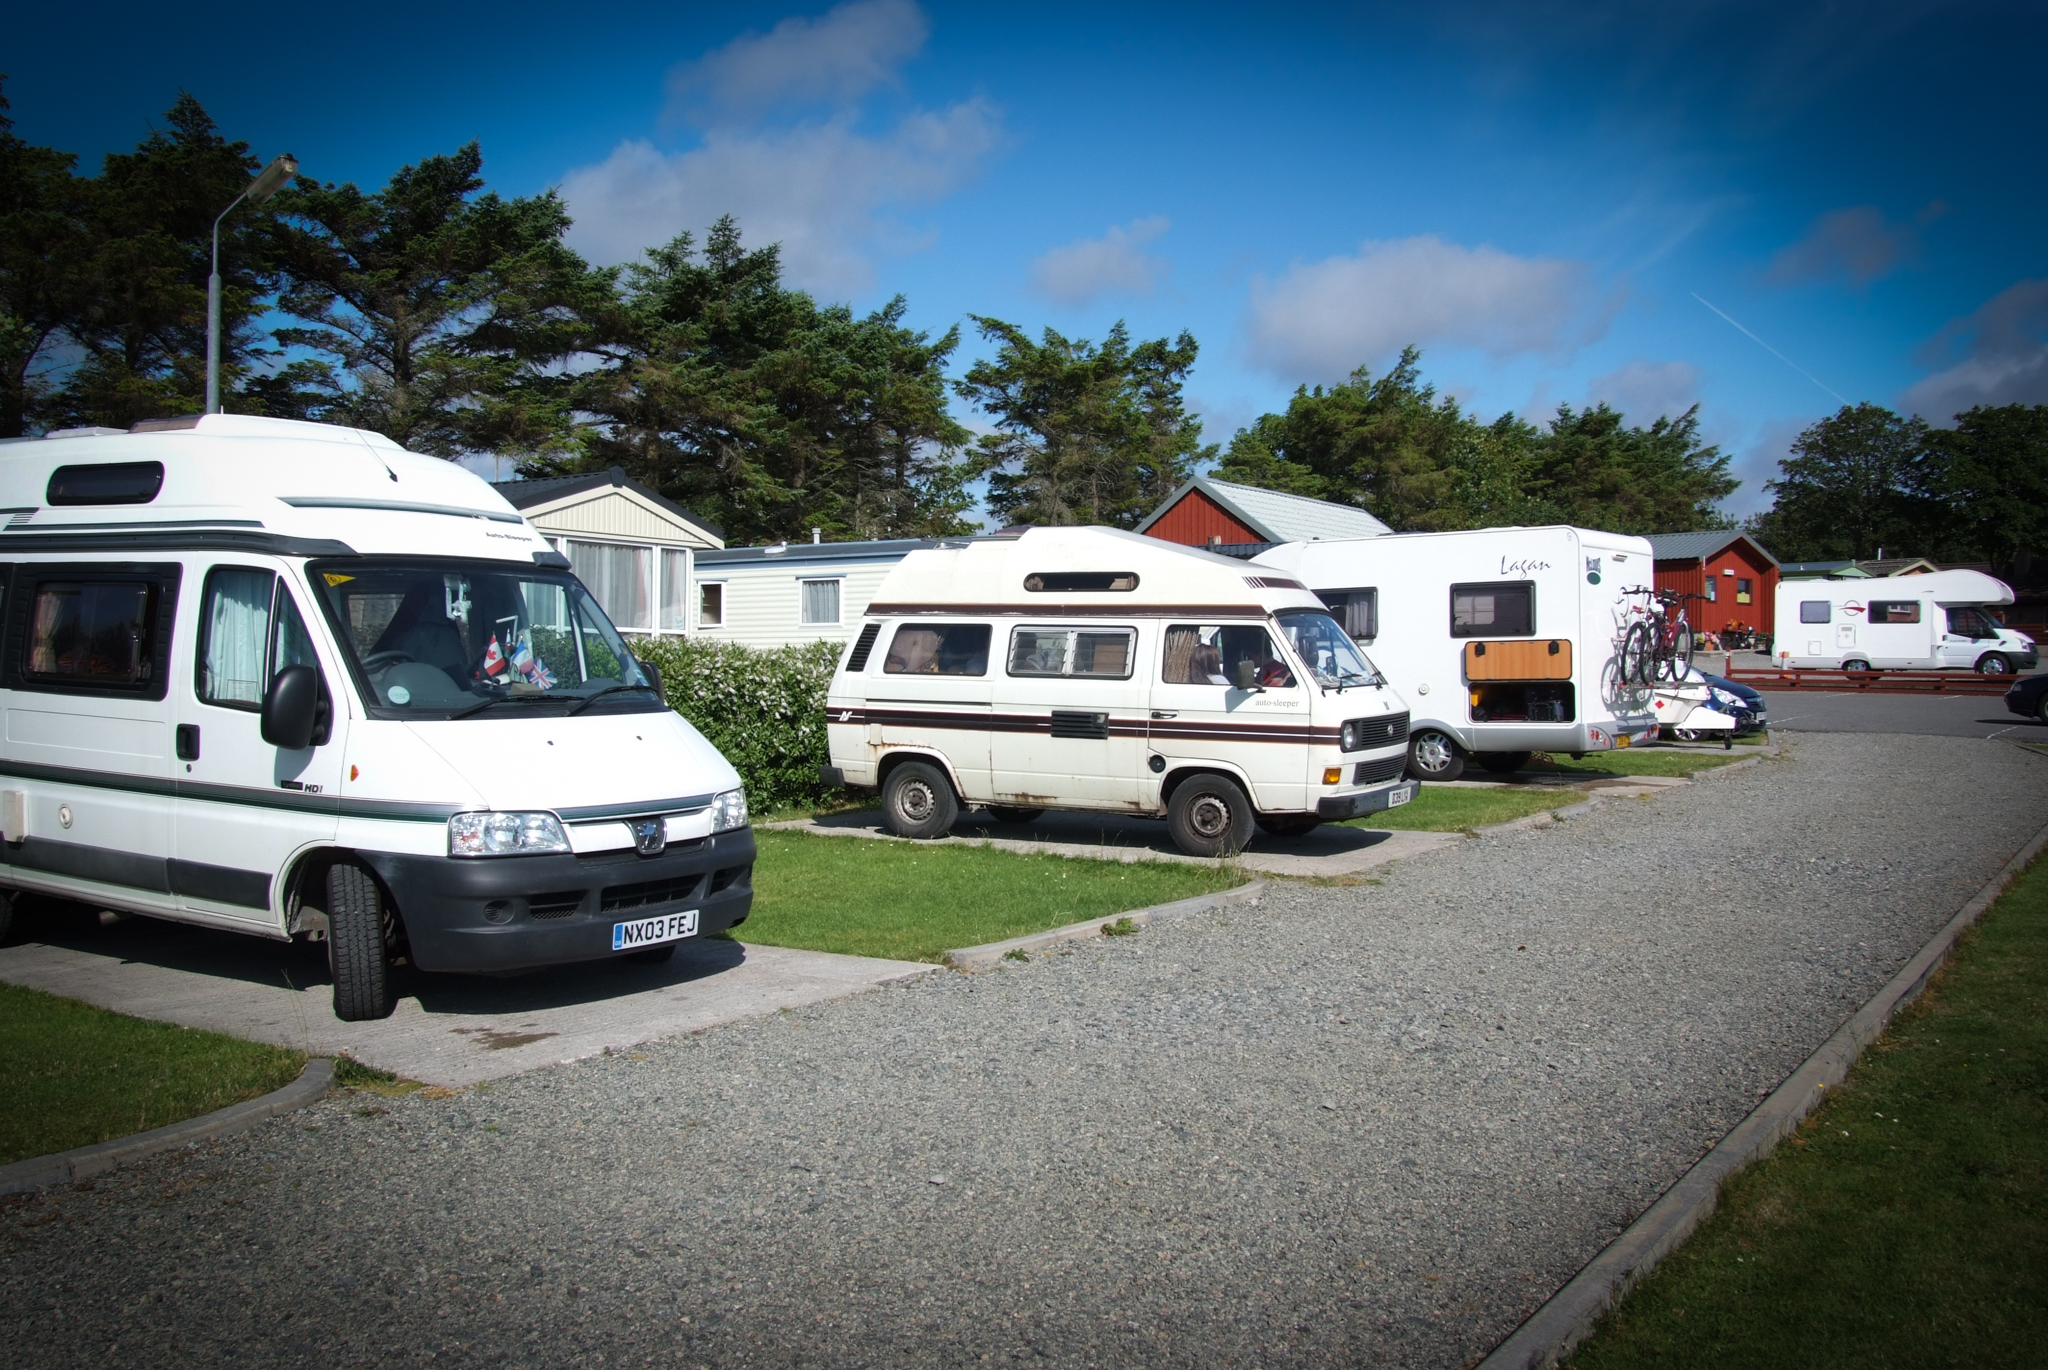 Touring Amp Camping Laxdale Holiday Park Isle Of Lewis